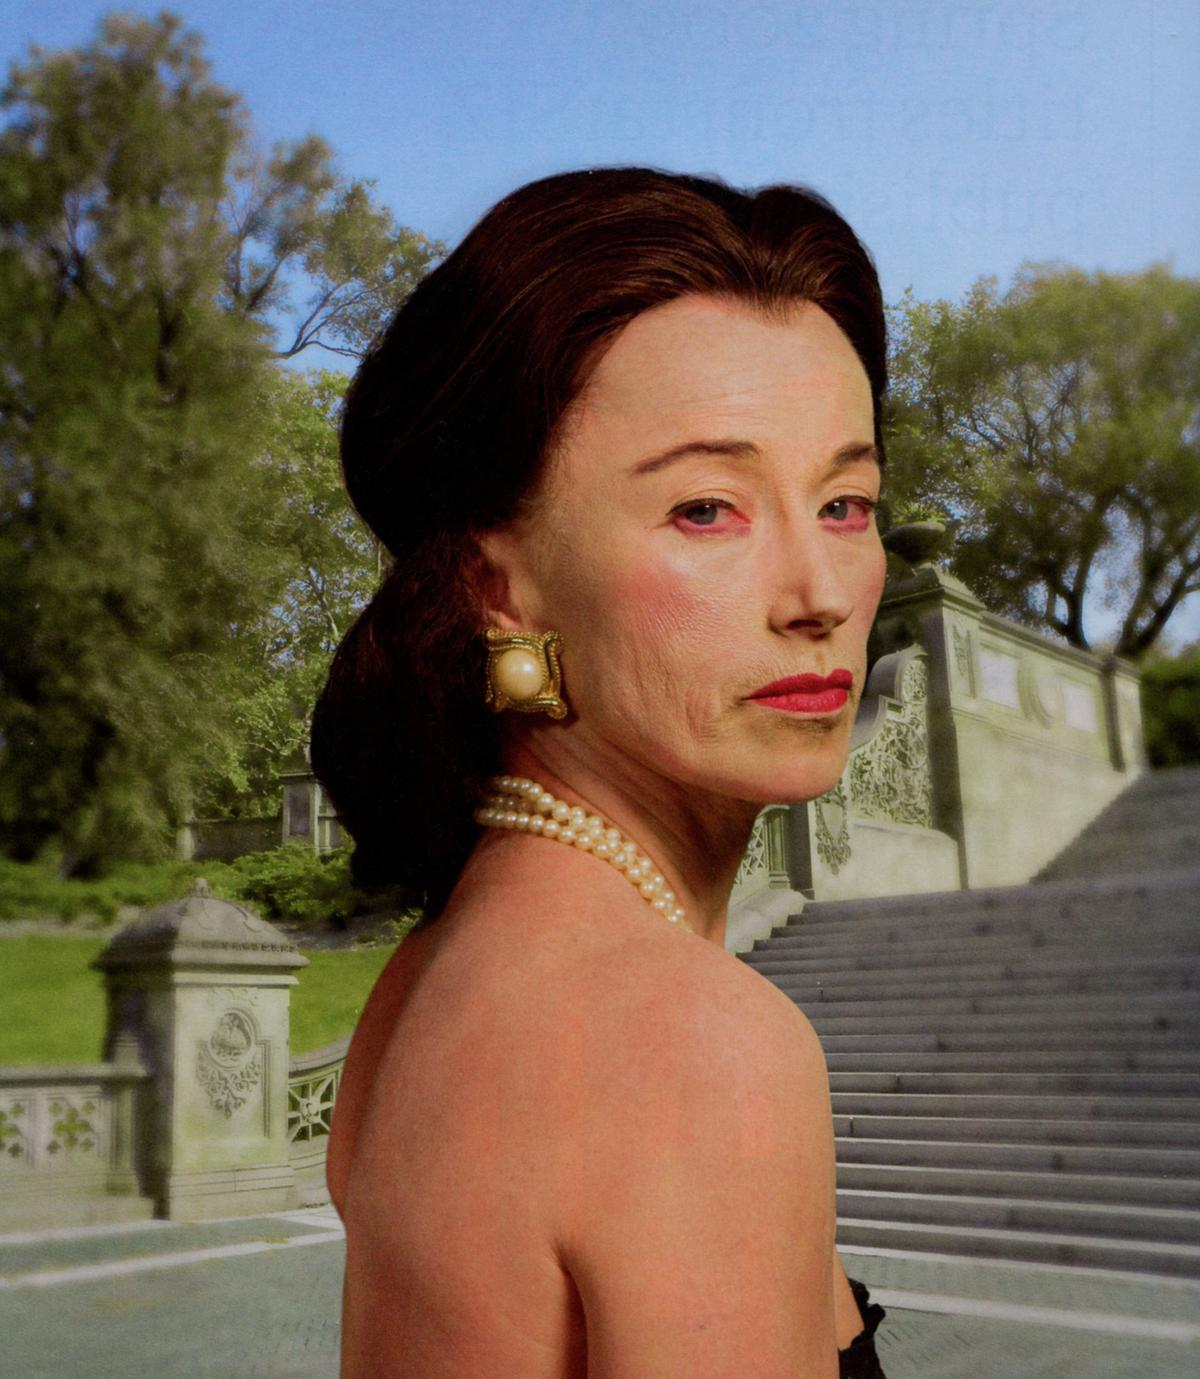 Sad Quotes About Depression: The Reel Foto: Cindy Sherman: Self-Portraits Of Others